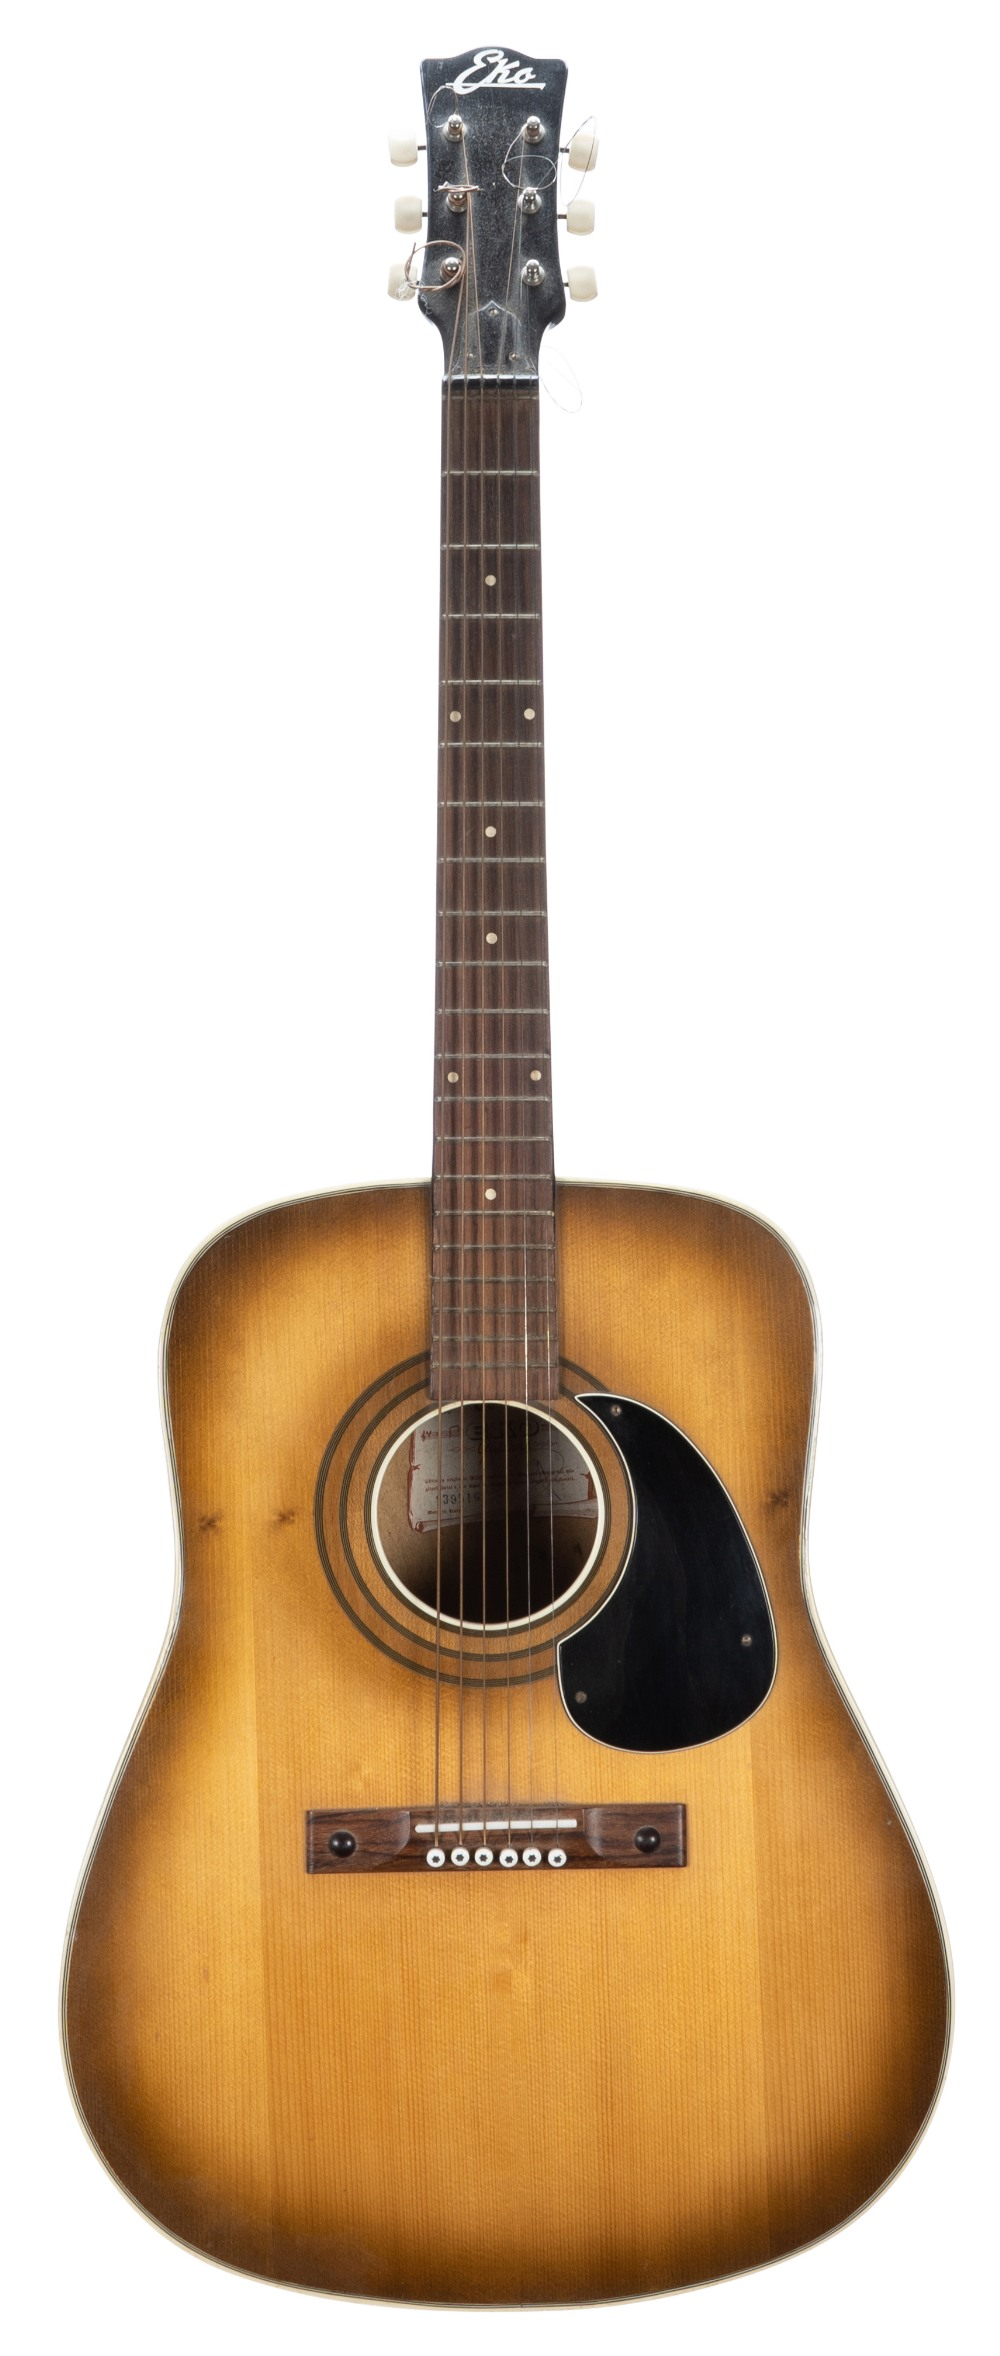 Lot 30 - 1970s Eko J52 acoustic guitar, made in Italy; Finish: tan top, various imperfections including